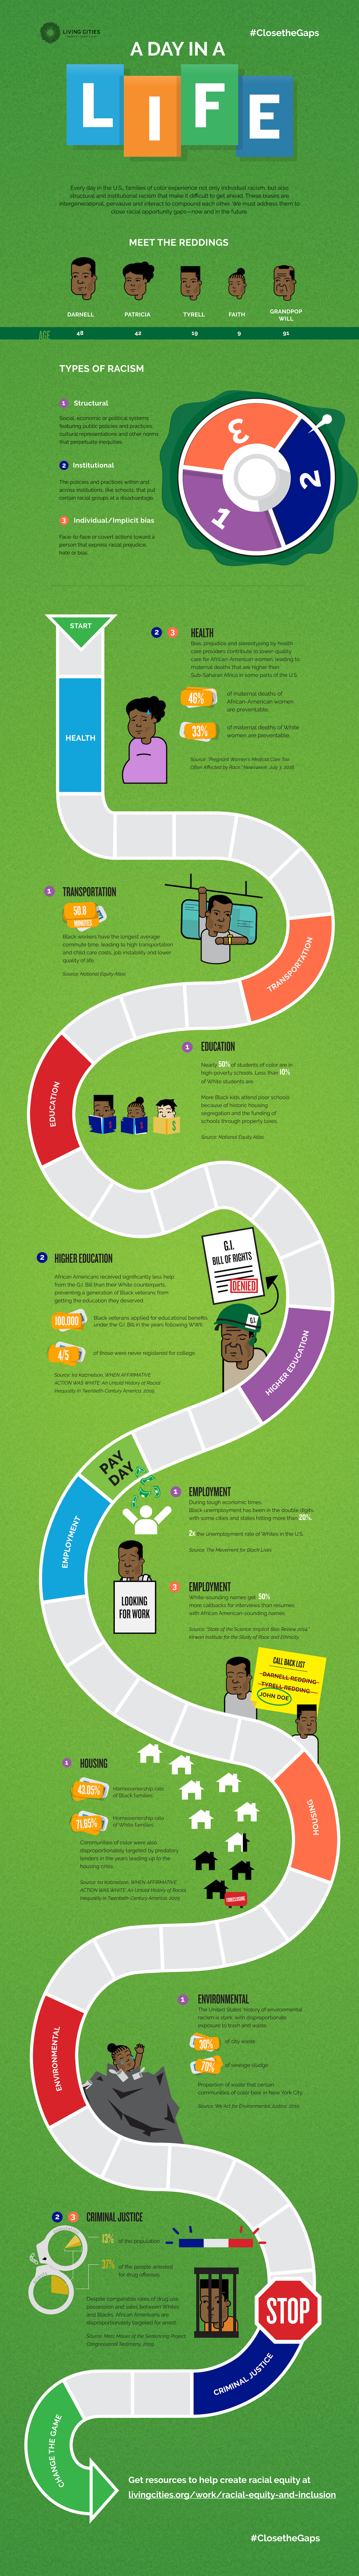 A Day in the Life: How Racism Impacts Families of Color. Click on the infographic to expand.